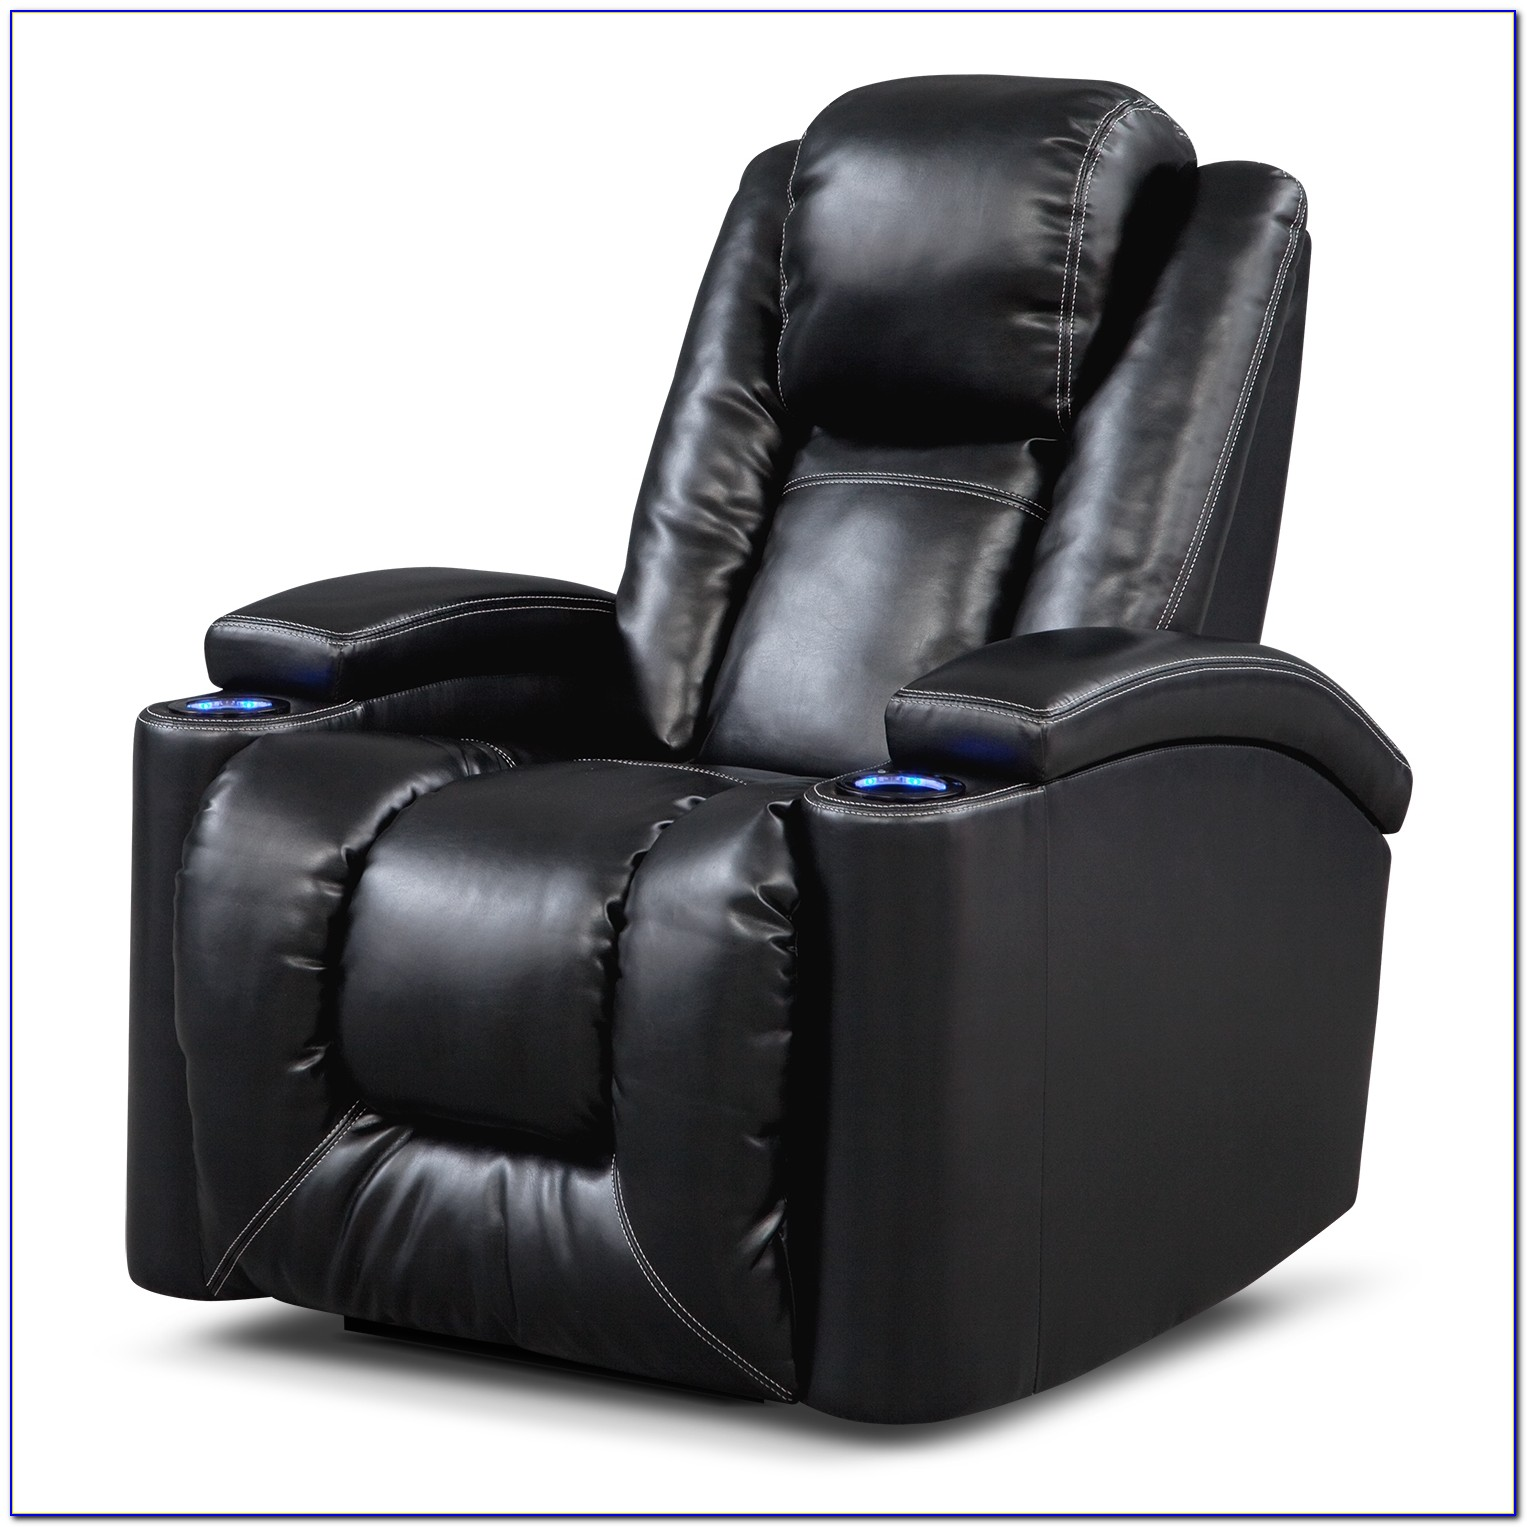 Power Recliner Chairs With Massage And Heat